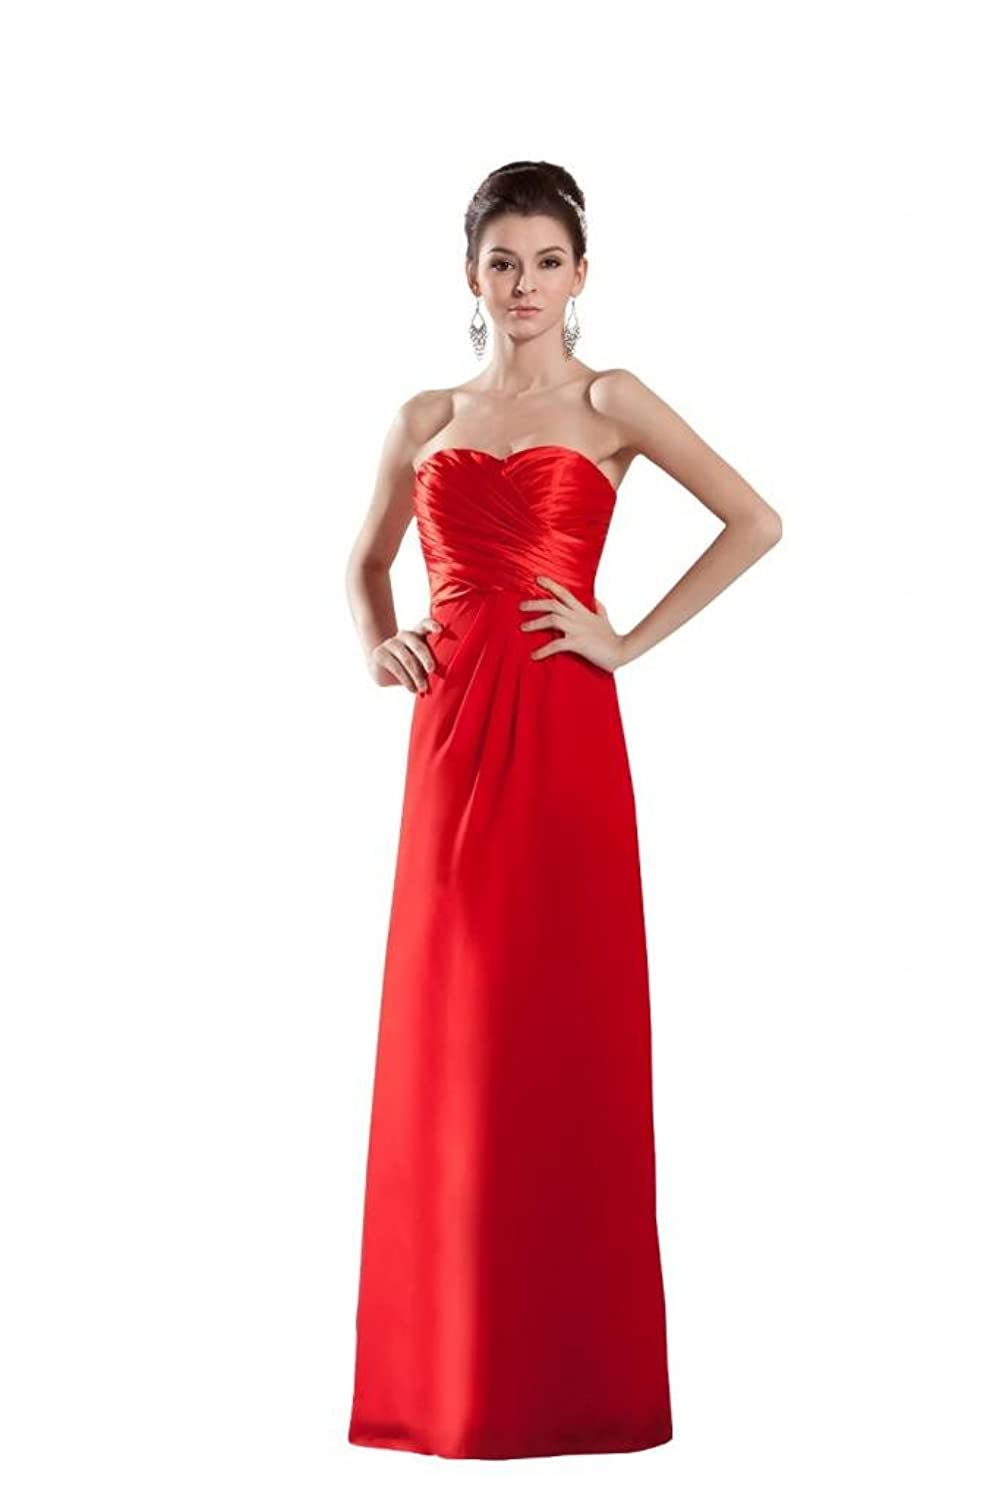 Orifashion Simple Strapless Red Prom/Evening Dress (Model EDSHER0114)